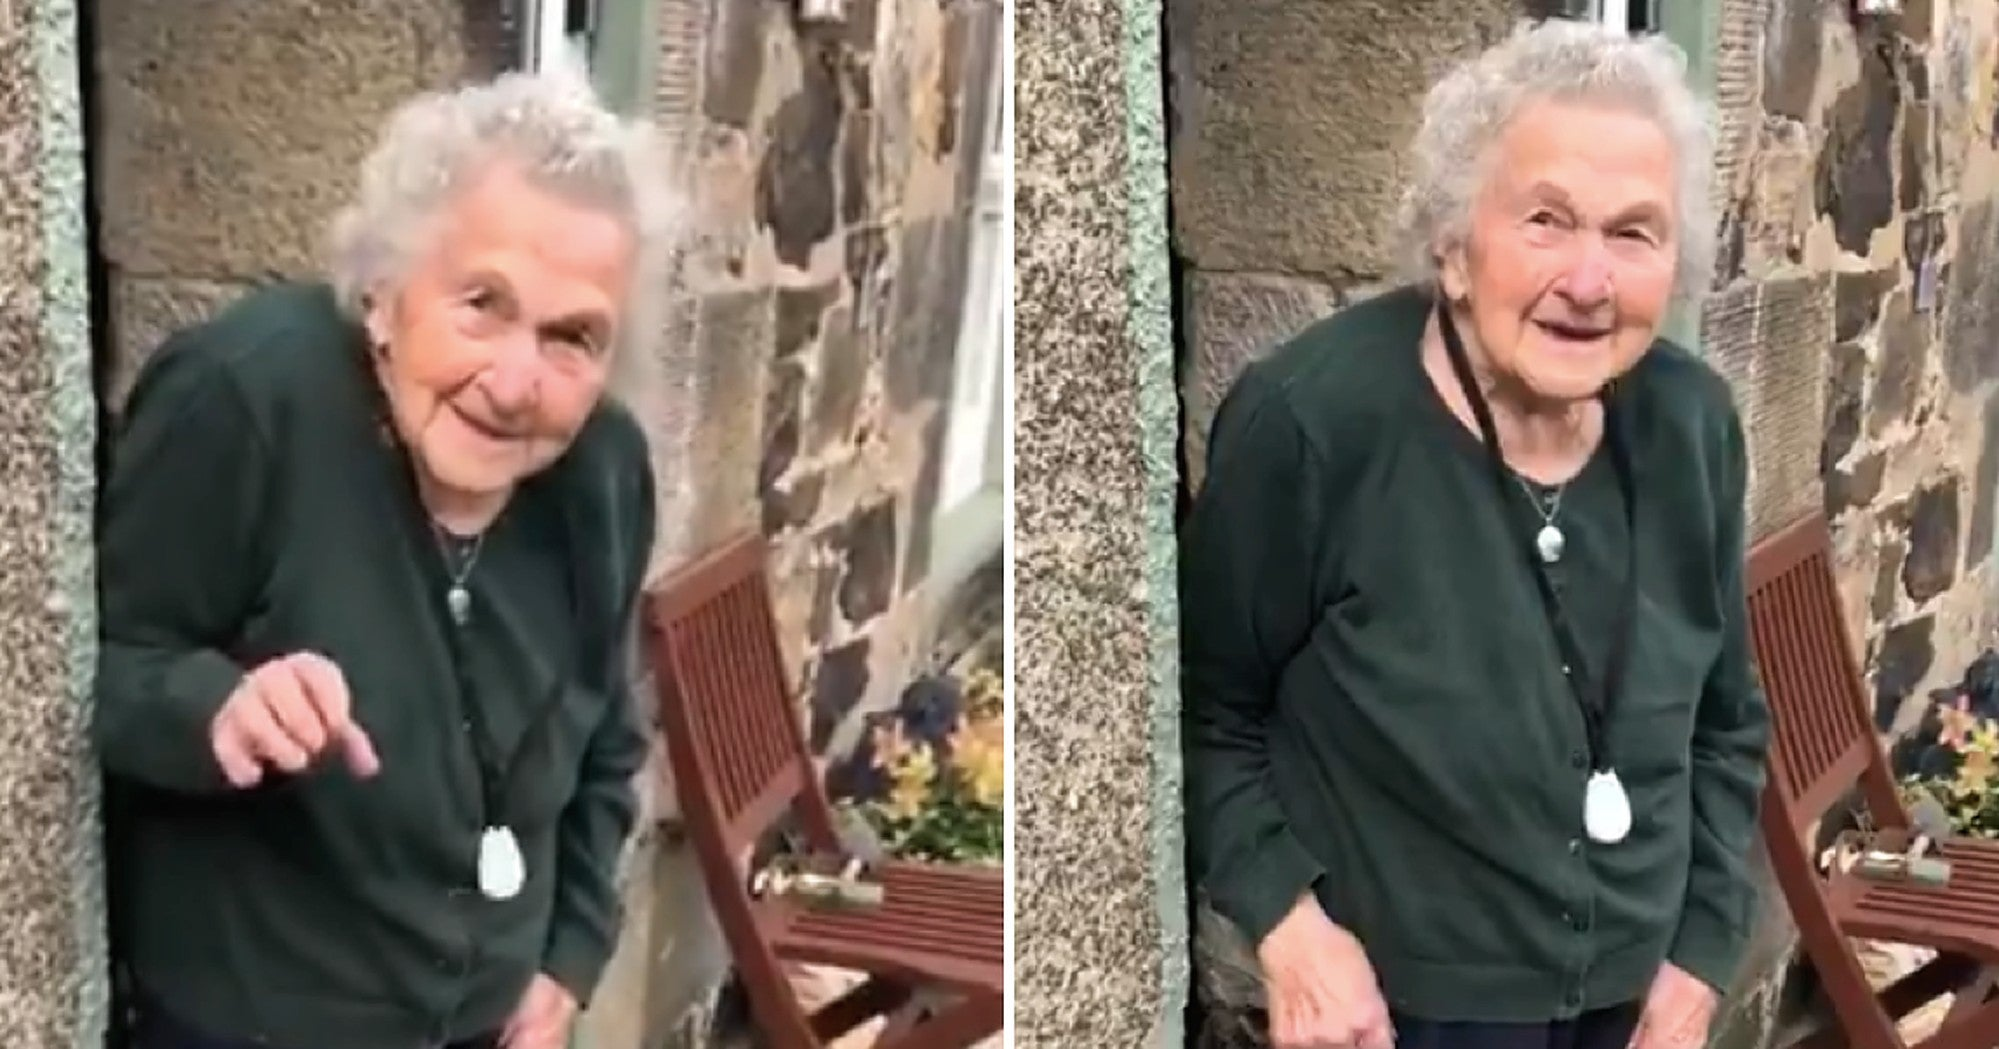 If this 93-year-old Scottish granny's coronavirus advice doesn't melt your heart, nothing will